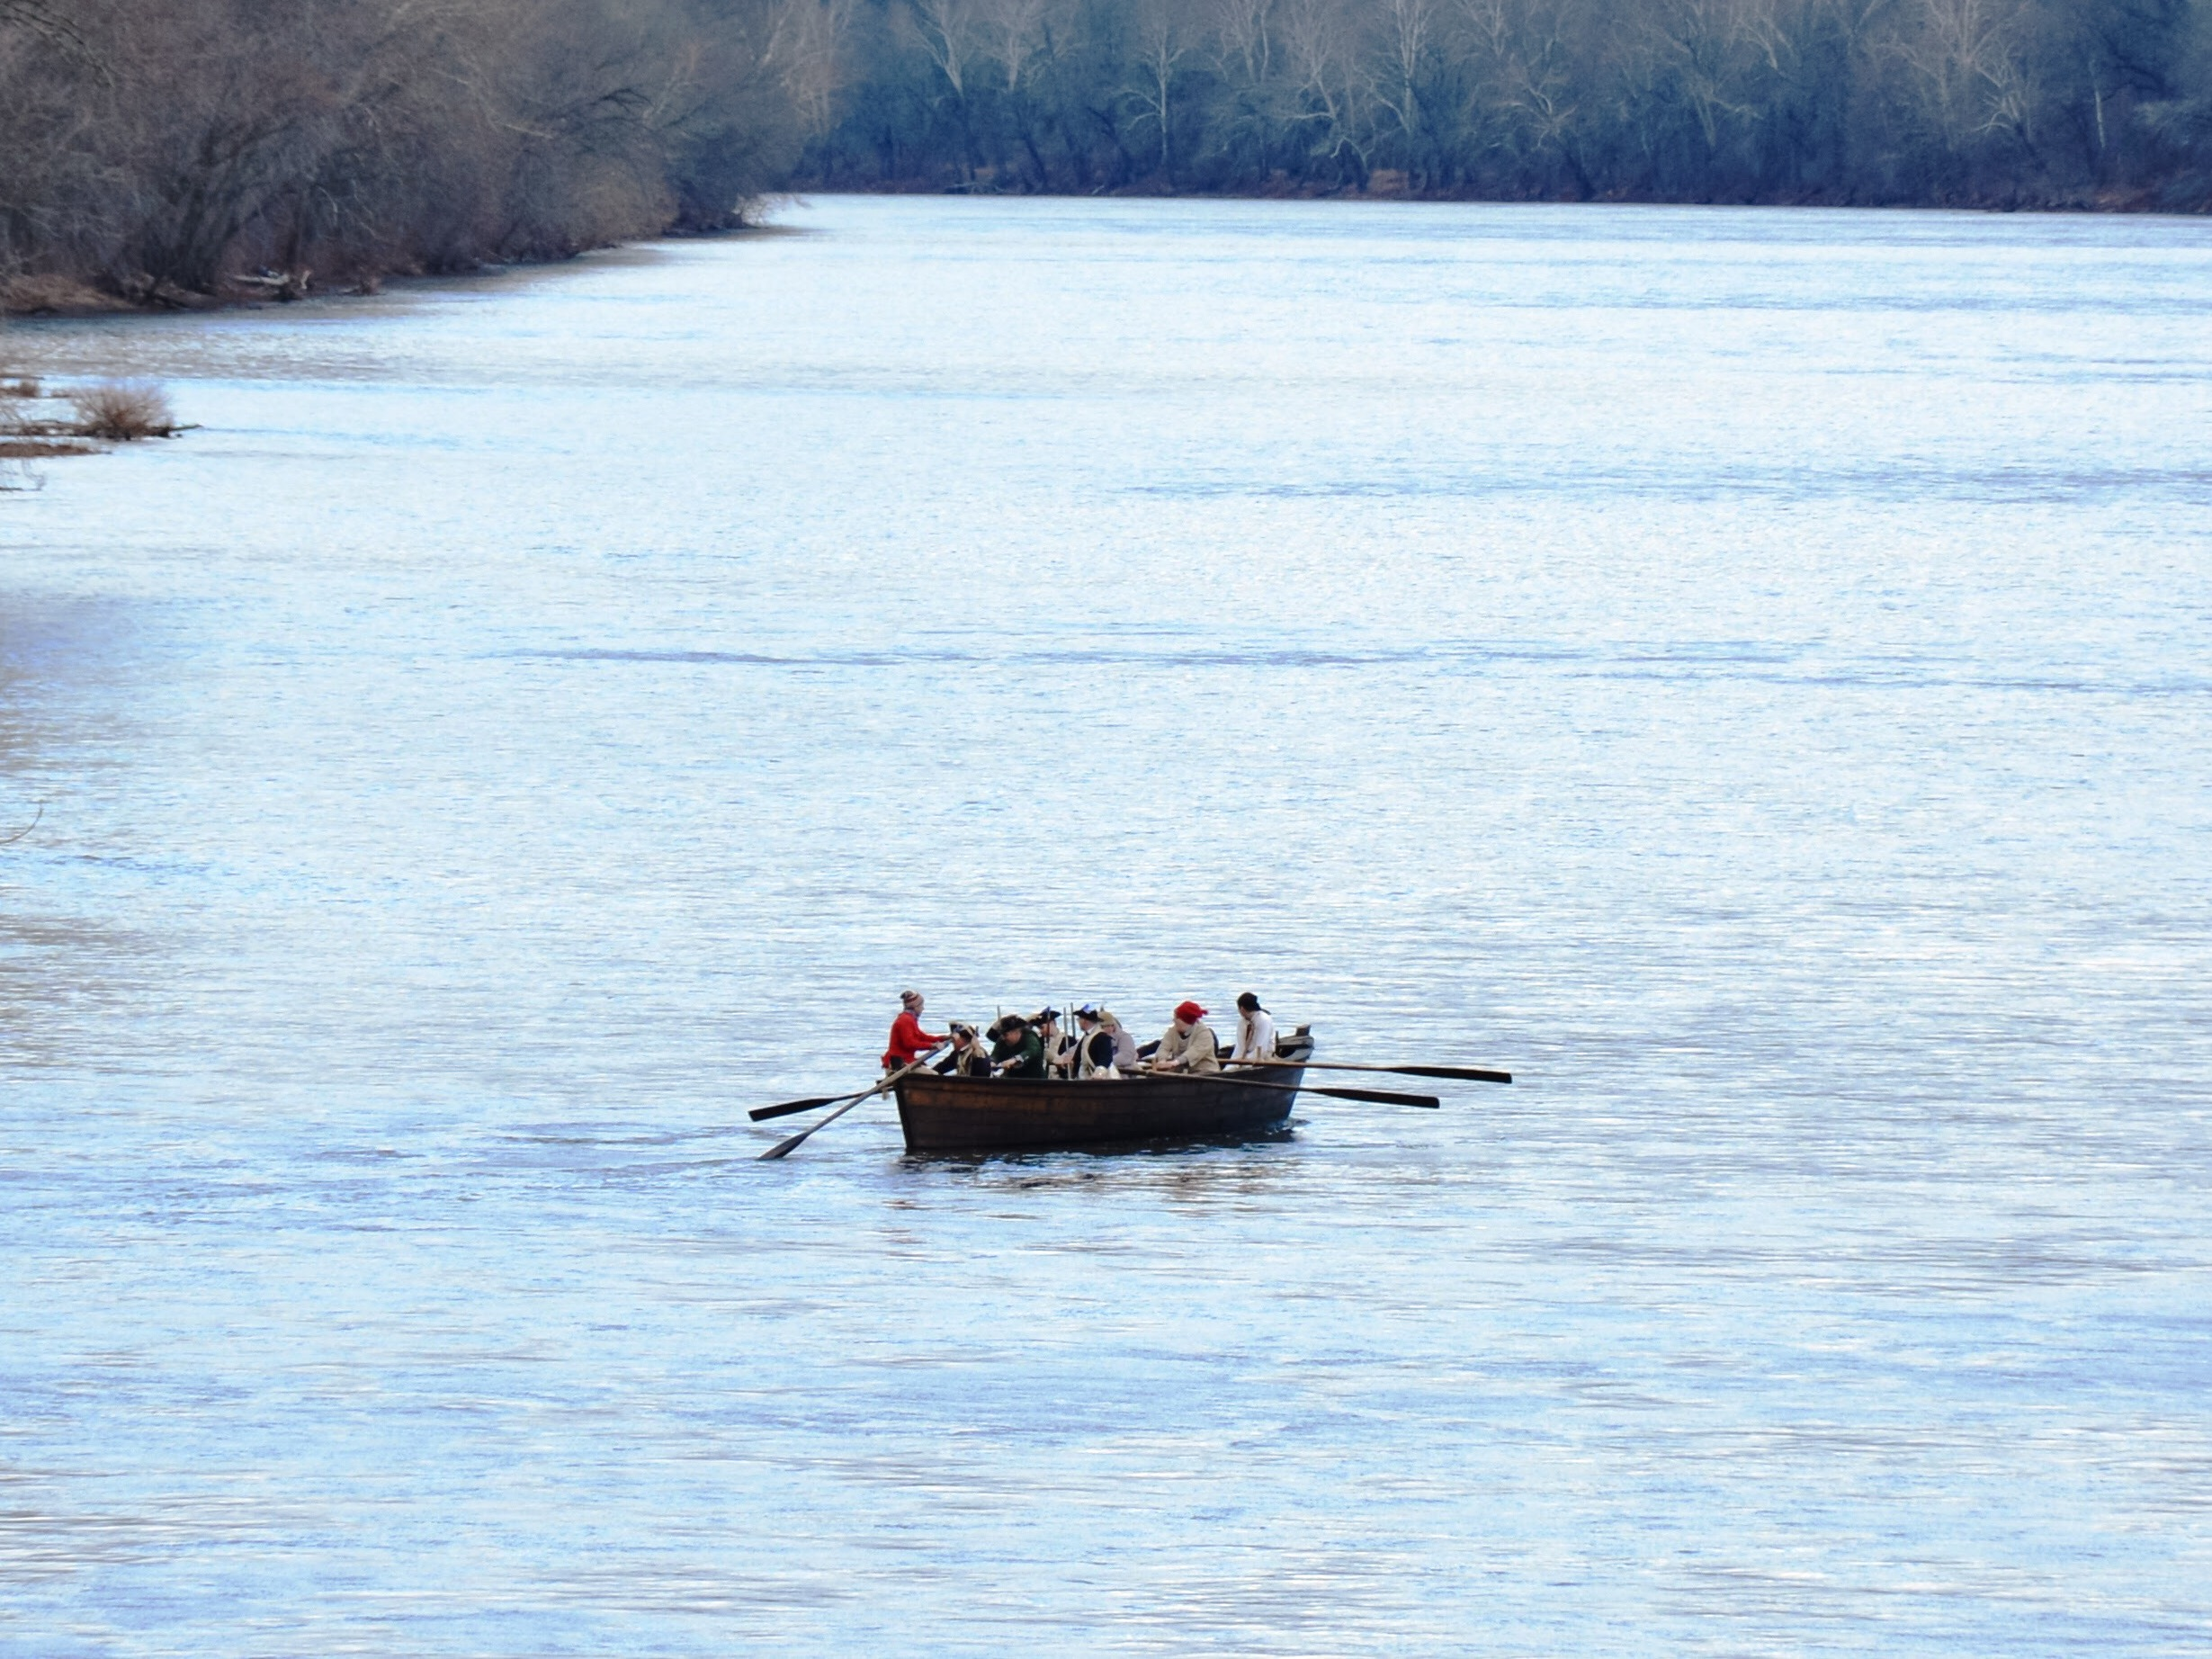 WASHINGTON CROSSING REENACTMENT - See an annual reenactment of George Washington's historic Christmas Day 1776 crossing of the Delaware River